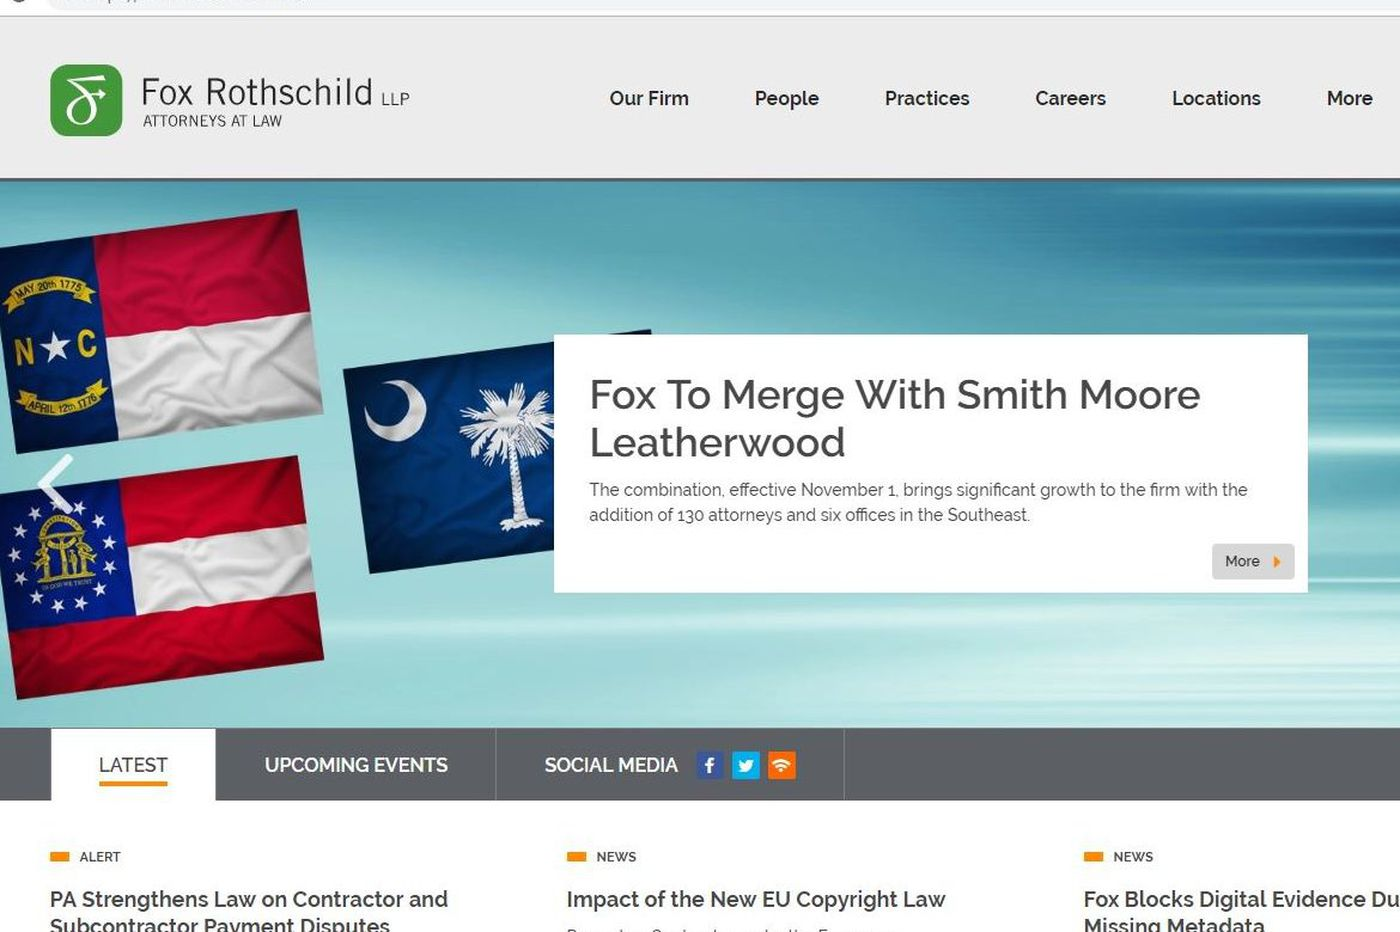 Fox Rothschild law expands into the Southeast, merging with Charlotte-based firm